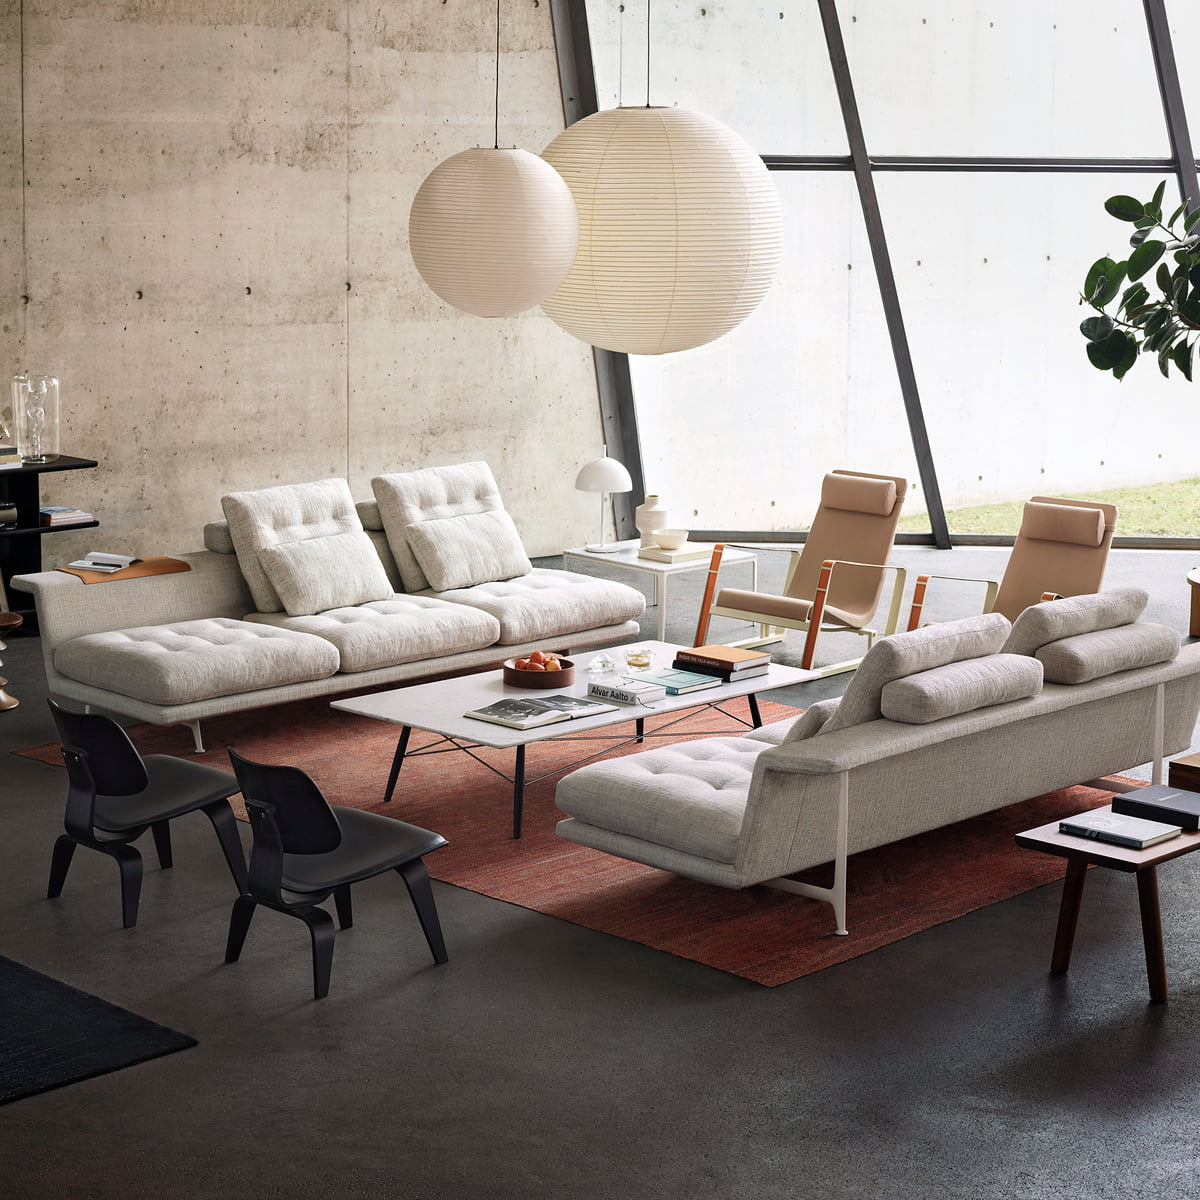 Grand Sofa Antonio Citterio Vitra Connox